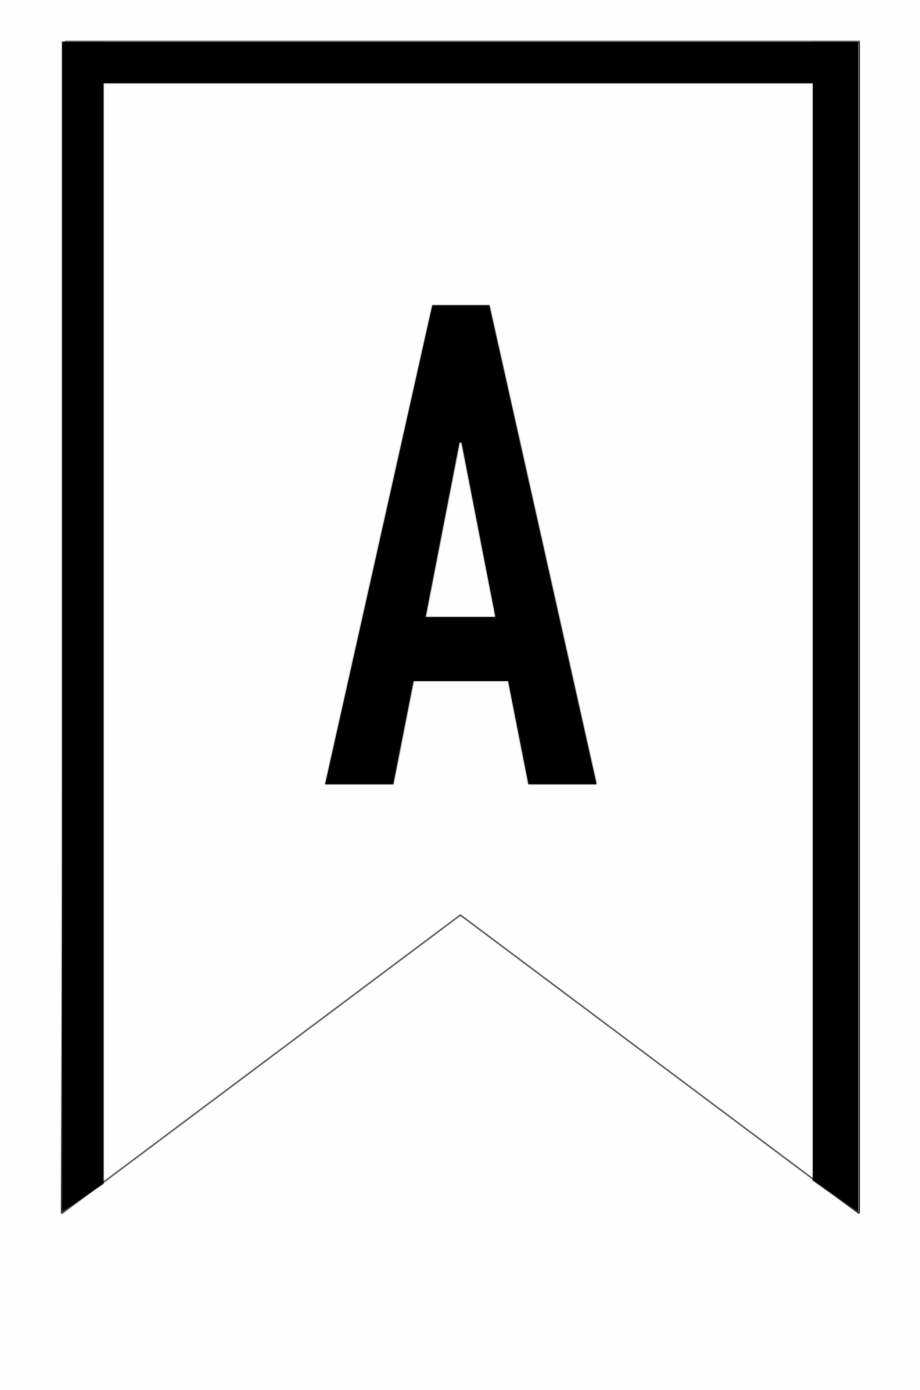 Banner Templates Free Printable Abc Letters - Printable Intended For Free Letter Templates For Banners